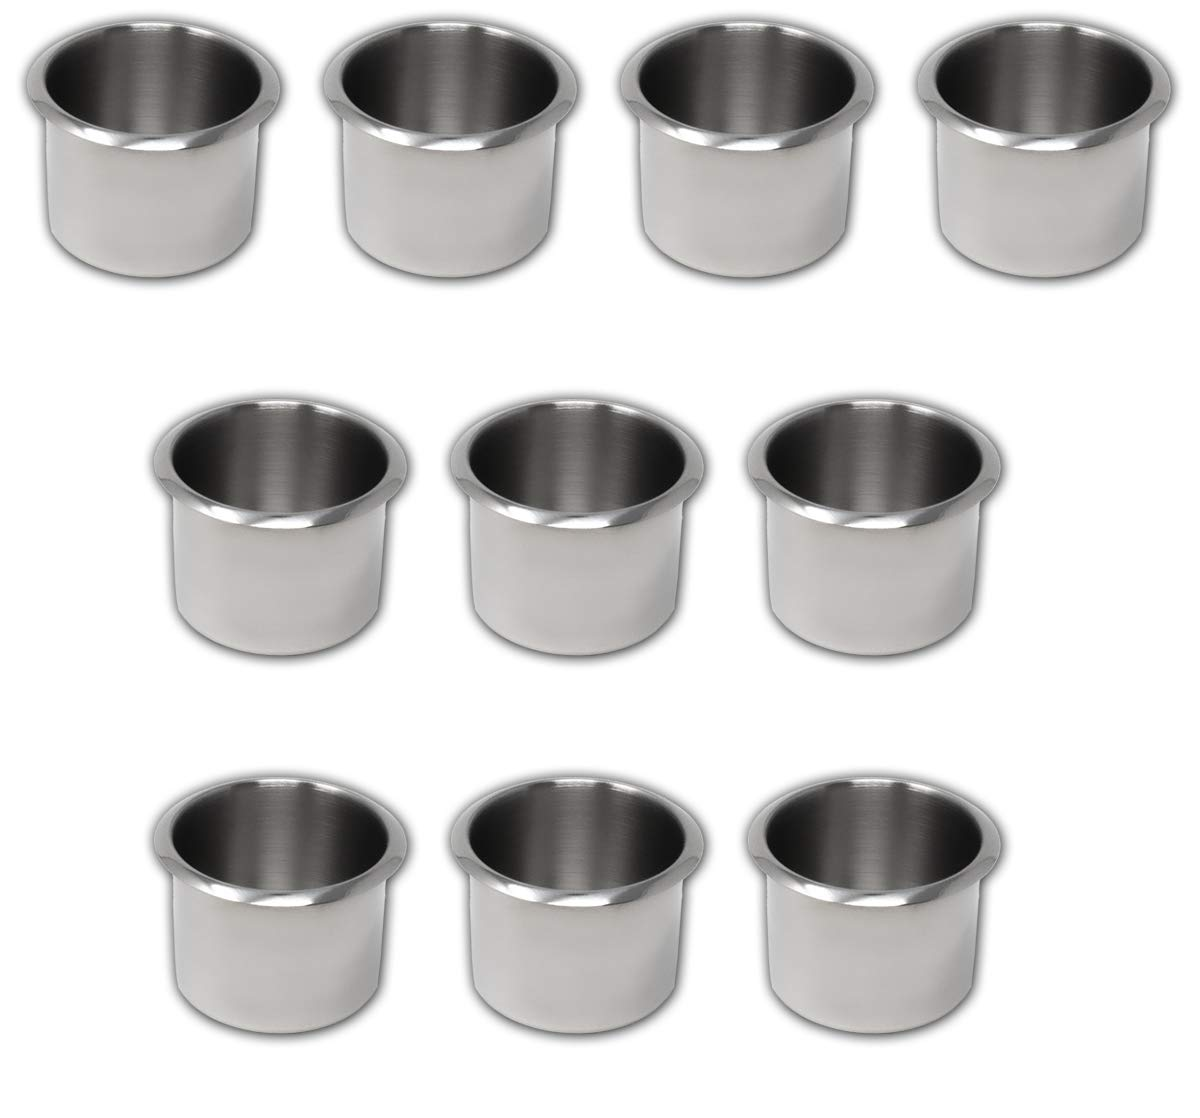 DA VINCI Lot of 10 Drop in Stainless Steel Poker Table Cup Holders, Fits Standard Soda Can or Beer Bottle